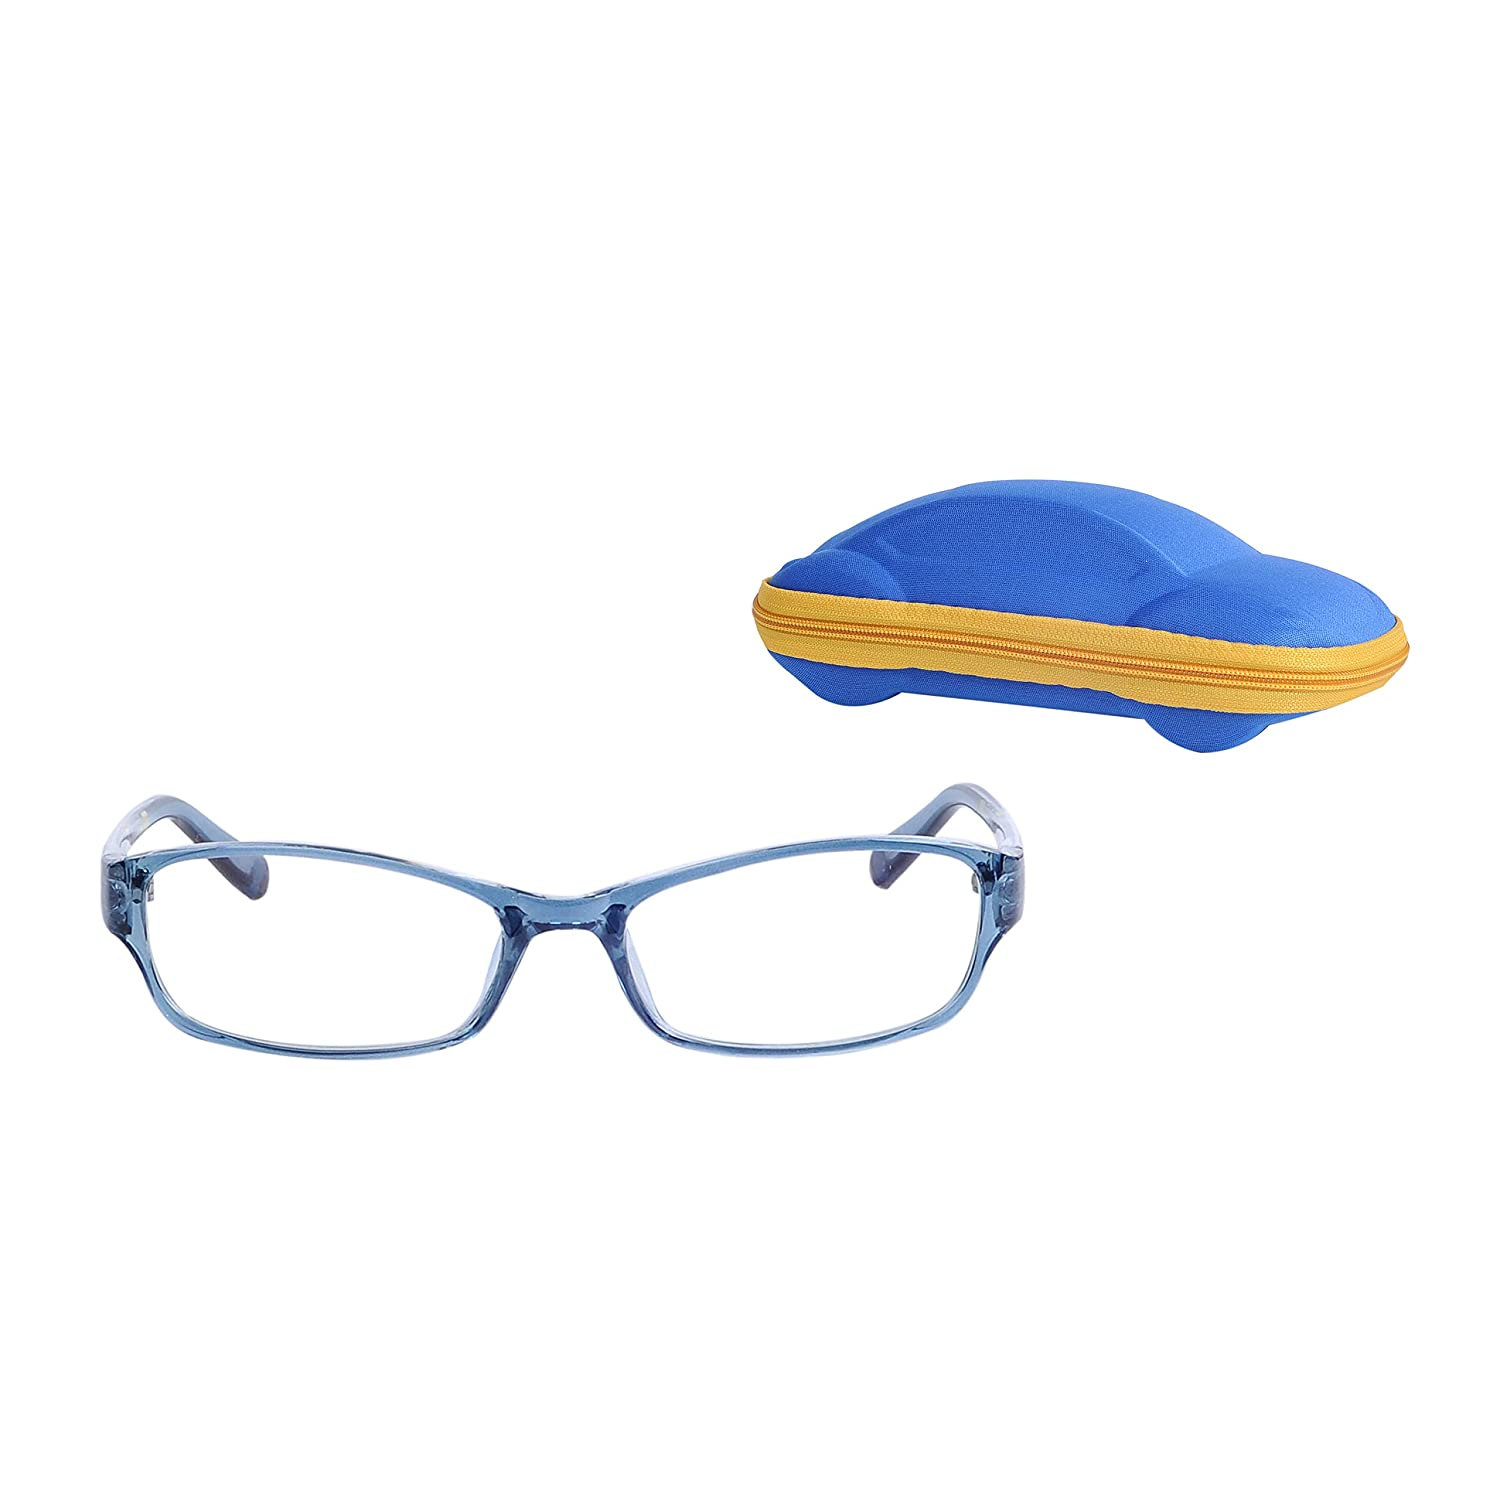 Kids Glasses Frame Girls Boys Eyewear Plain Clear Lens with Car-Shape Glasses Case